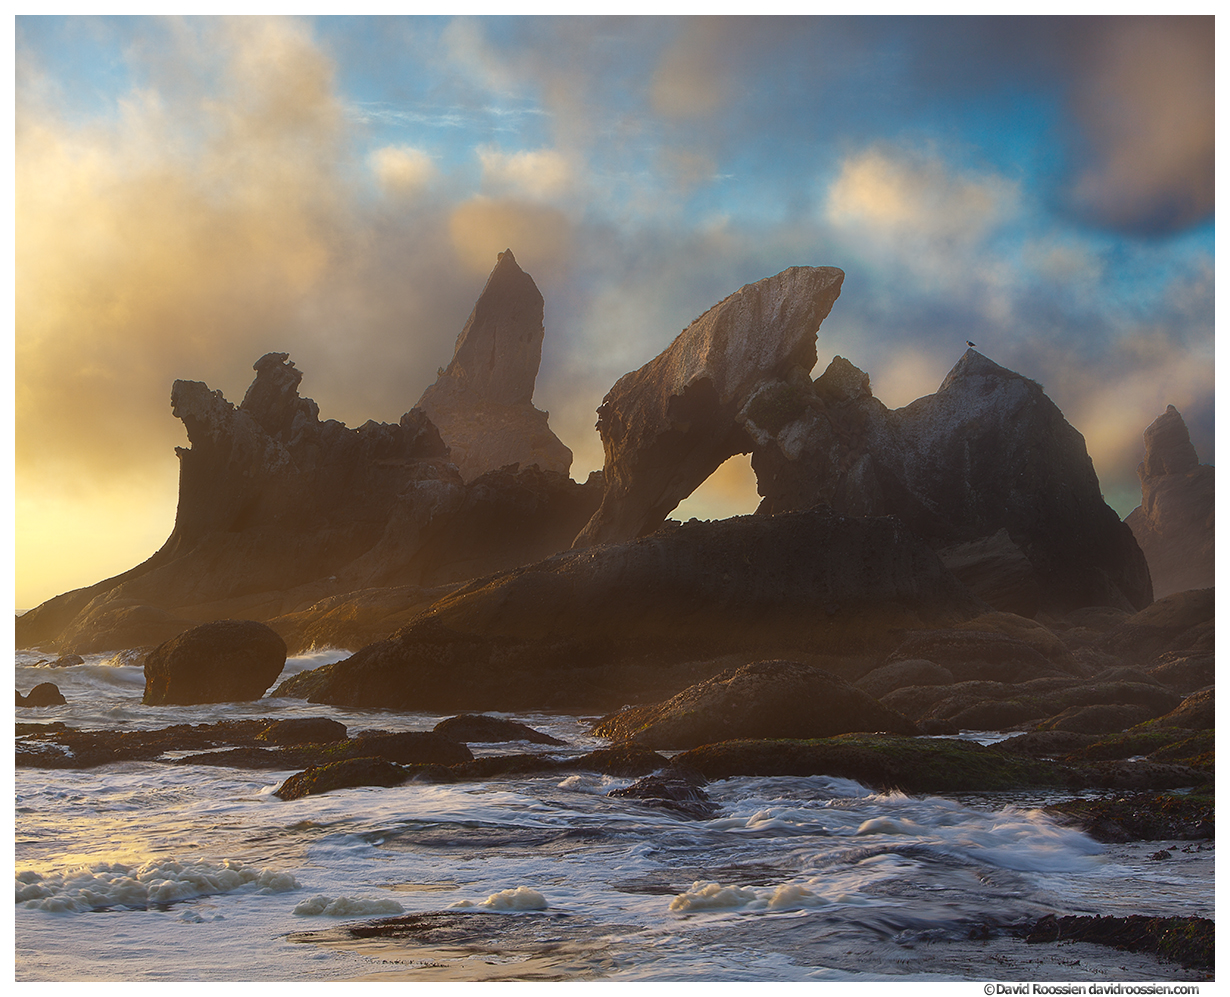 Jurassic Pinnacles, Shi Shi Beach, Olympic Peninsula